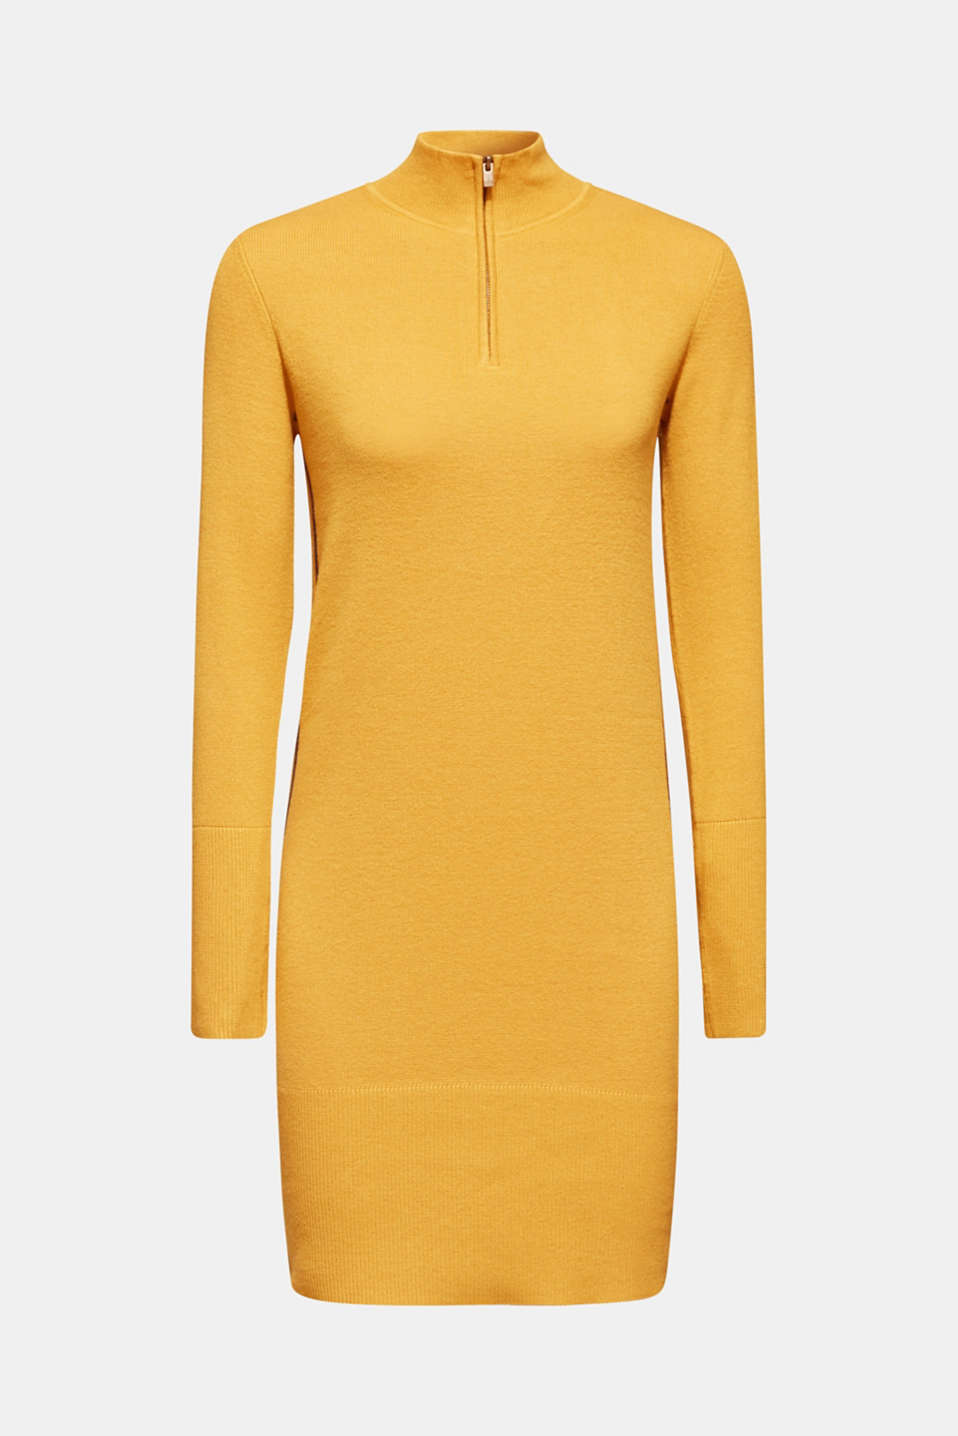 Knit dress with a zip-up band collar, HONEY YELLOW, detail image number 6